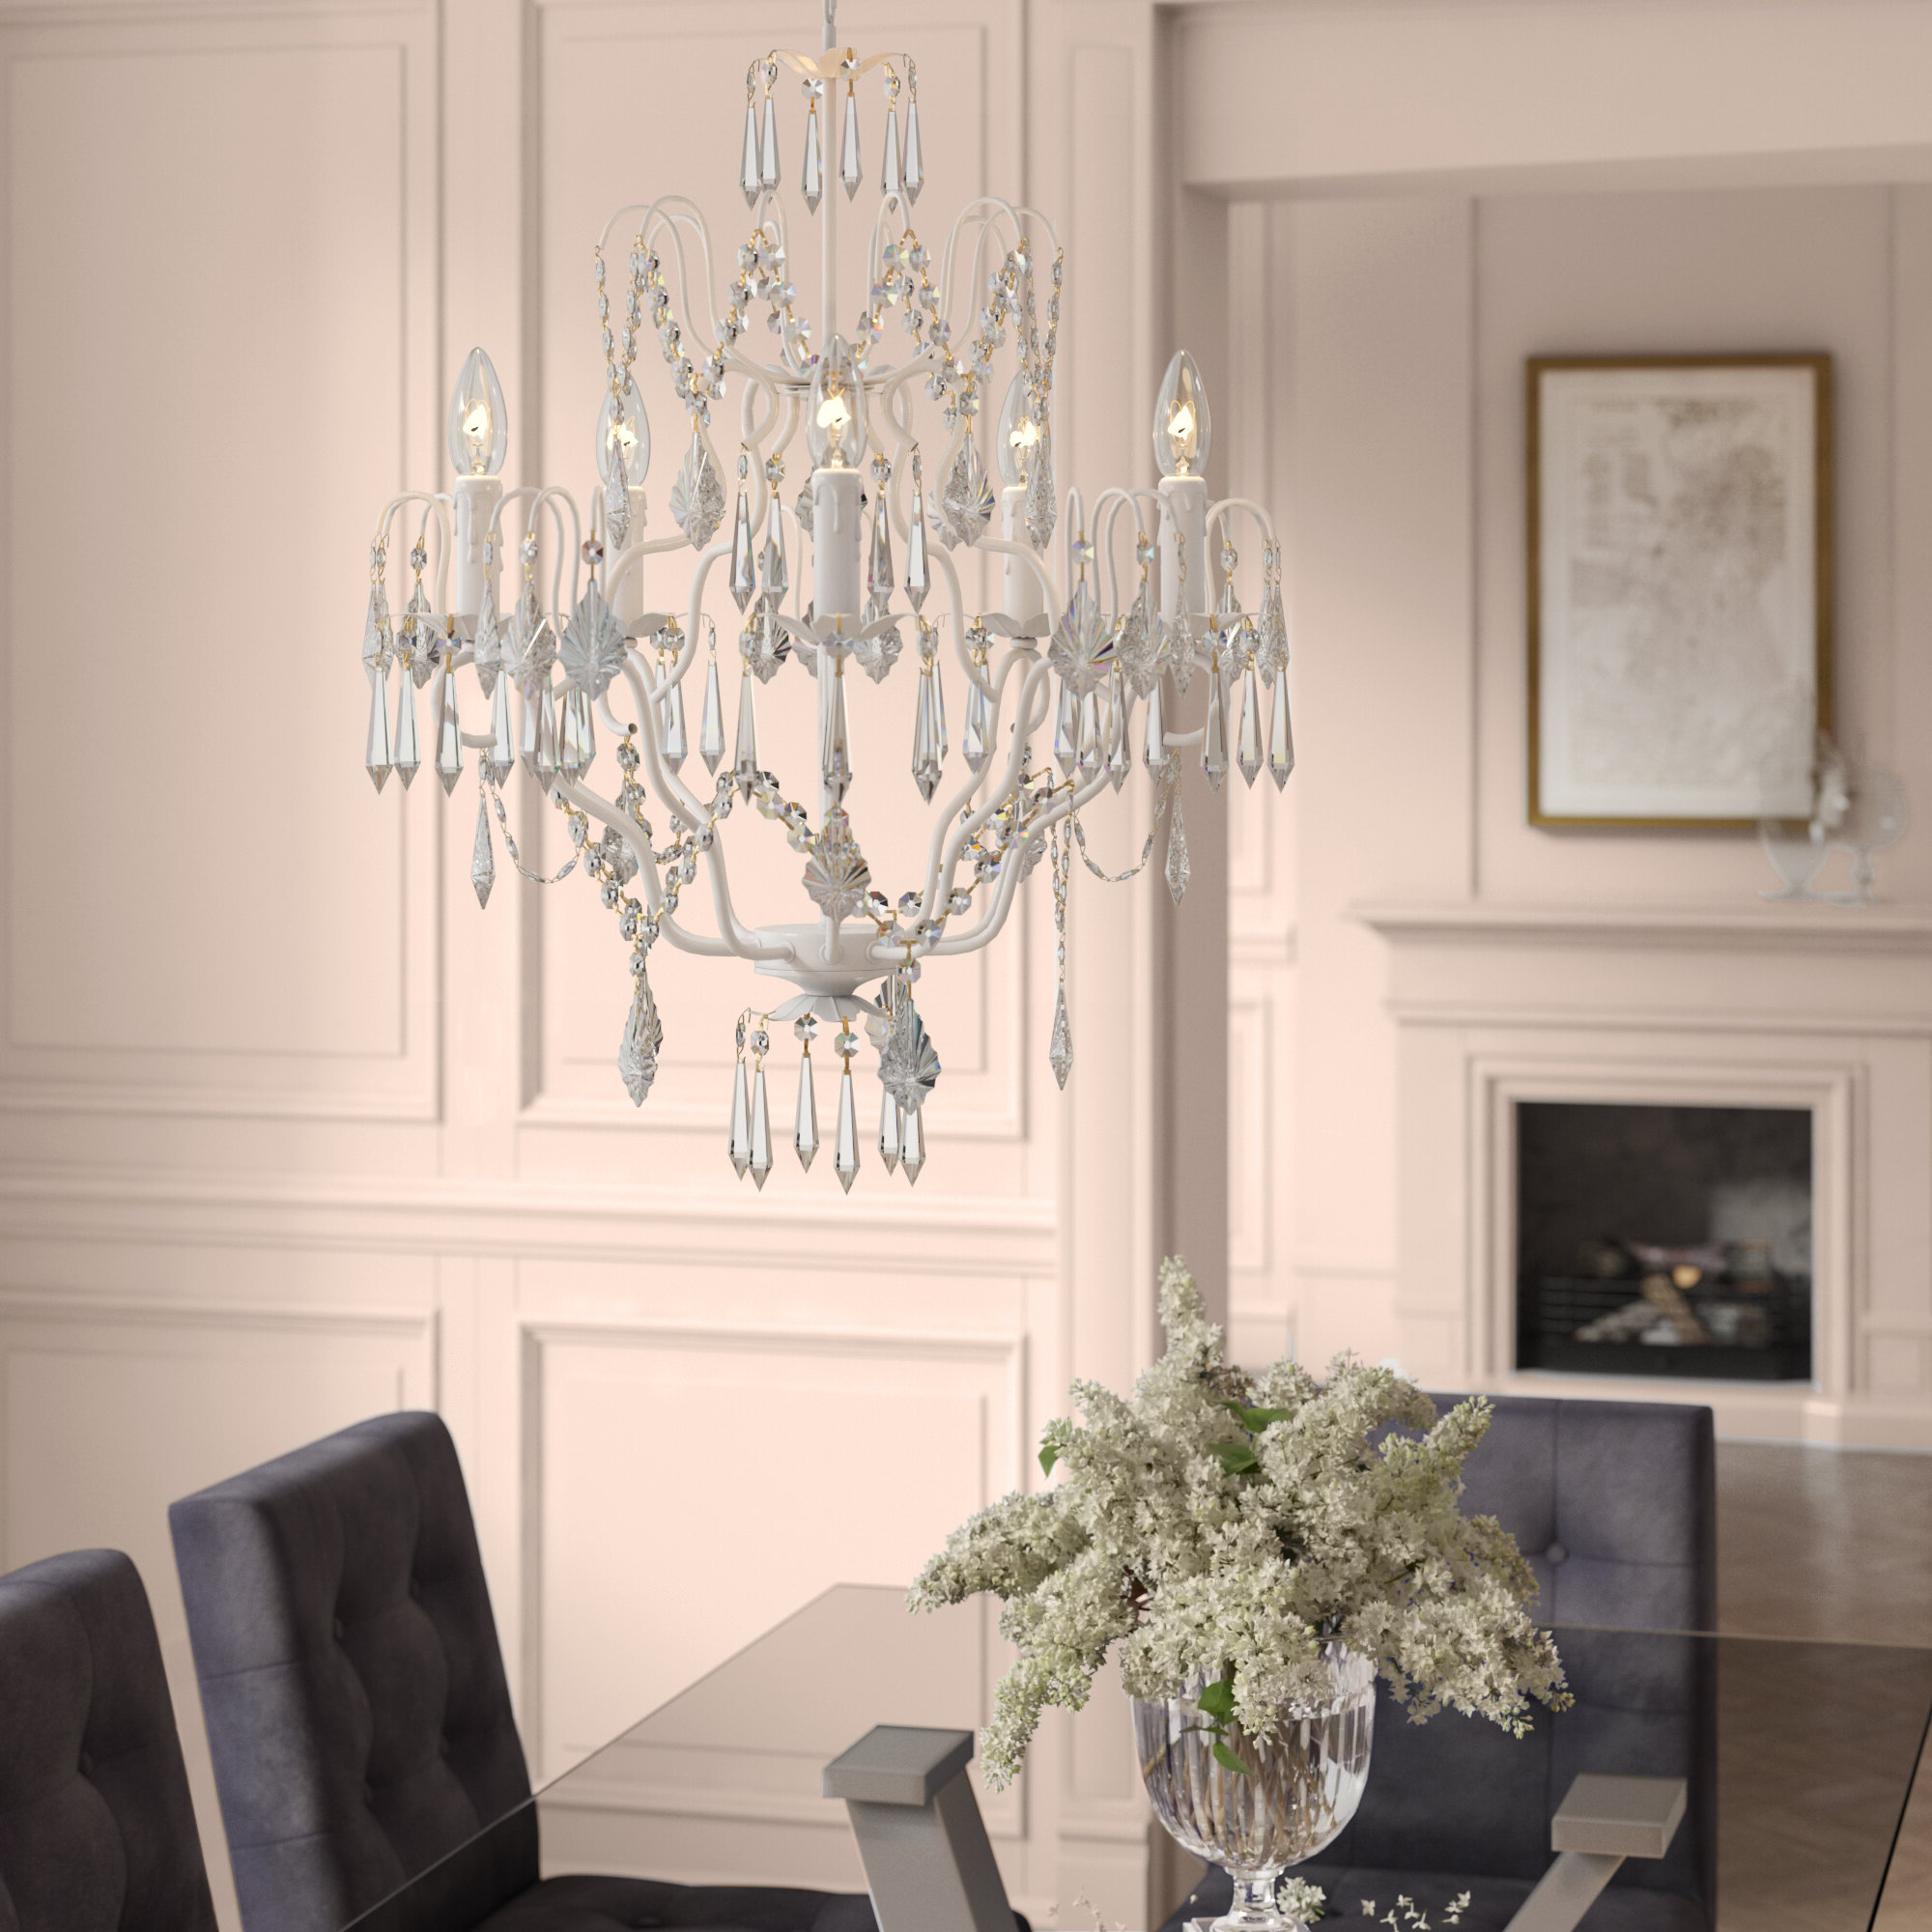 Clemence 5 Light Candle Style Chandelier For Popular Hesse 5 Light Candle Style Chandeliers (View 3 of 20)